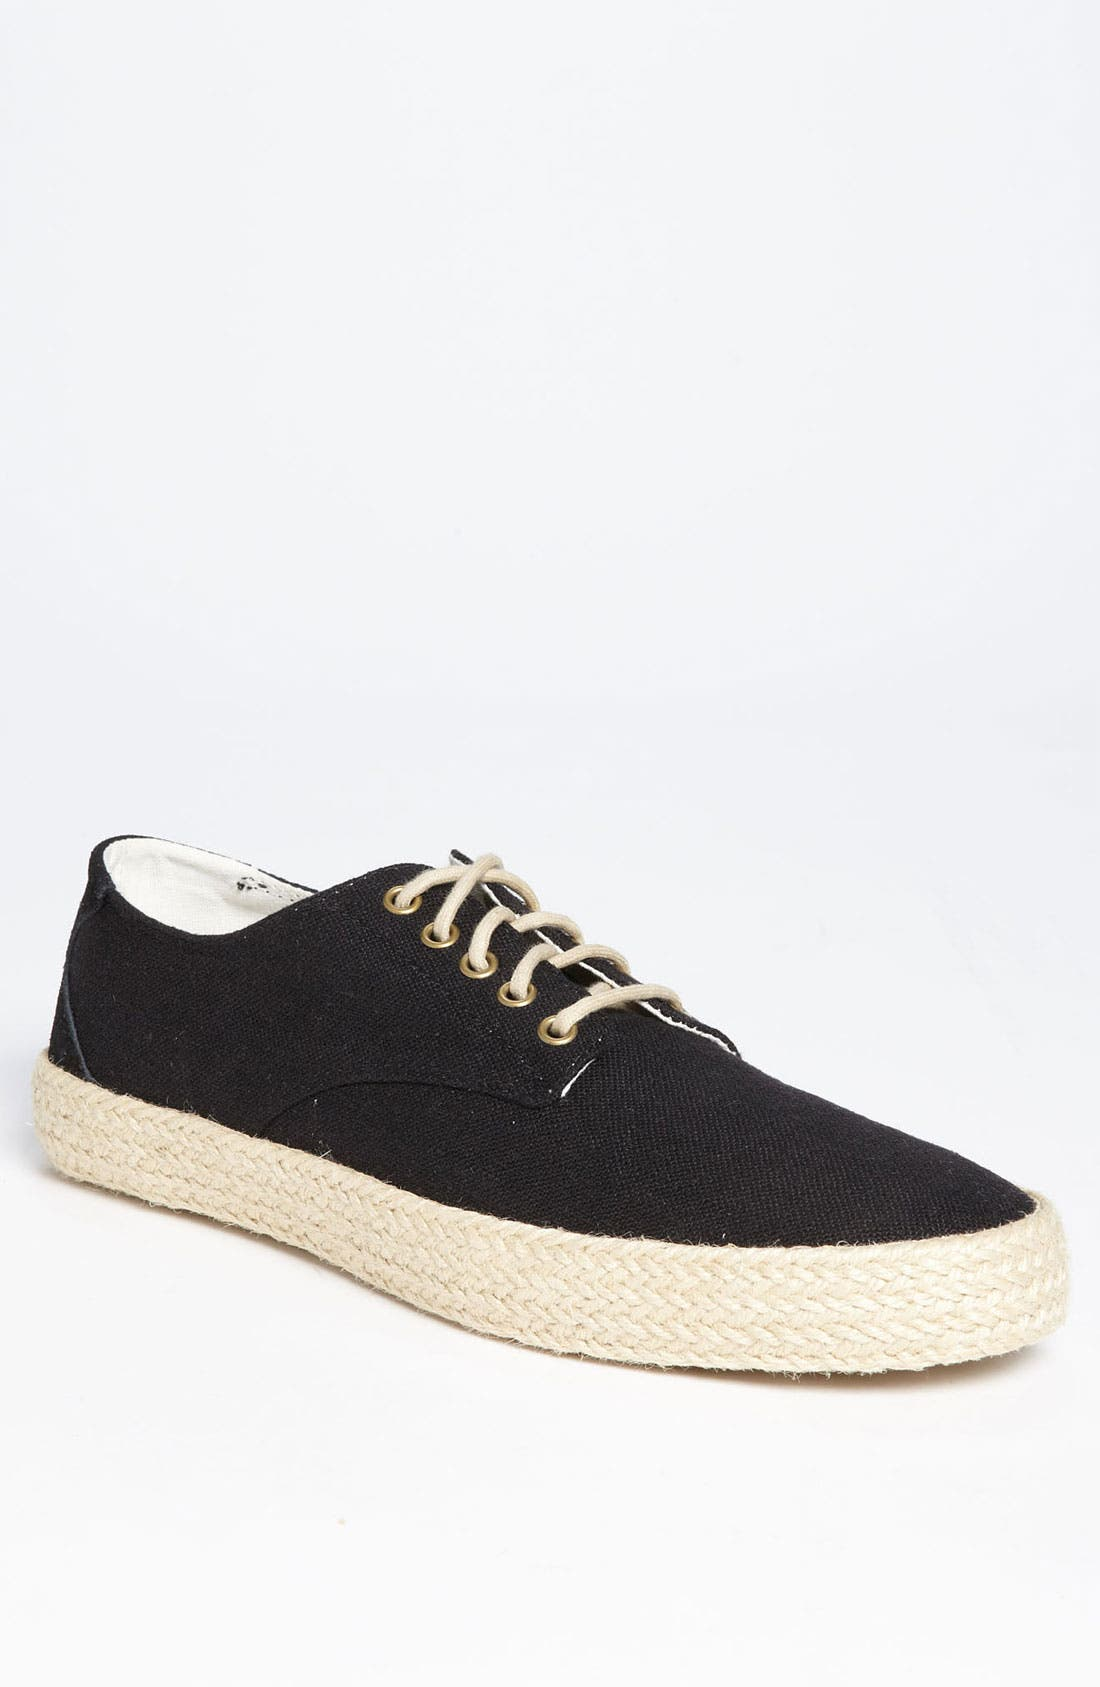 Main Image - Original Penguin 'Espy PT' Sneaker (Men)